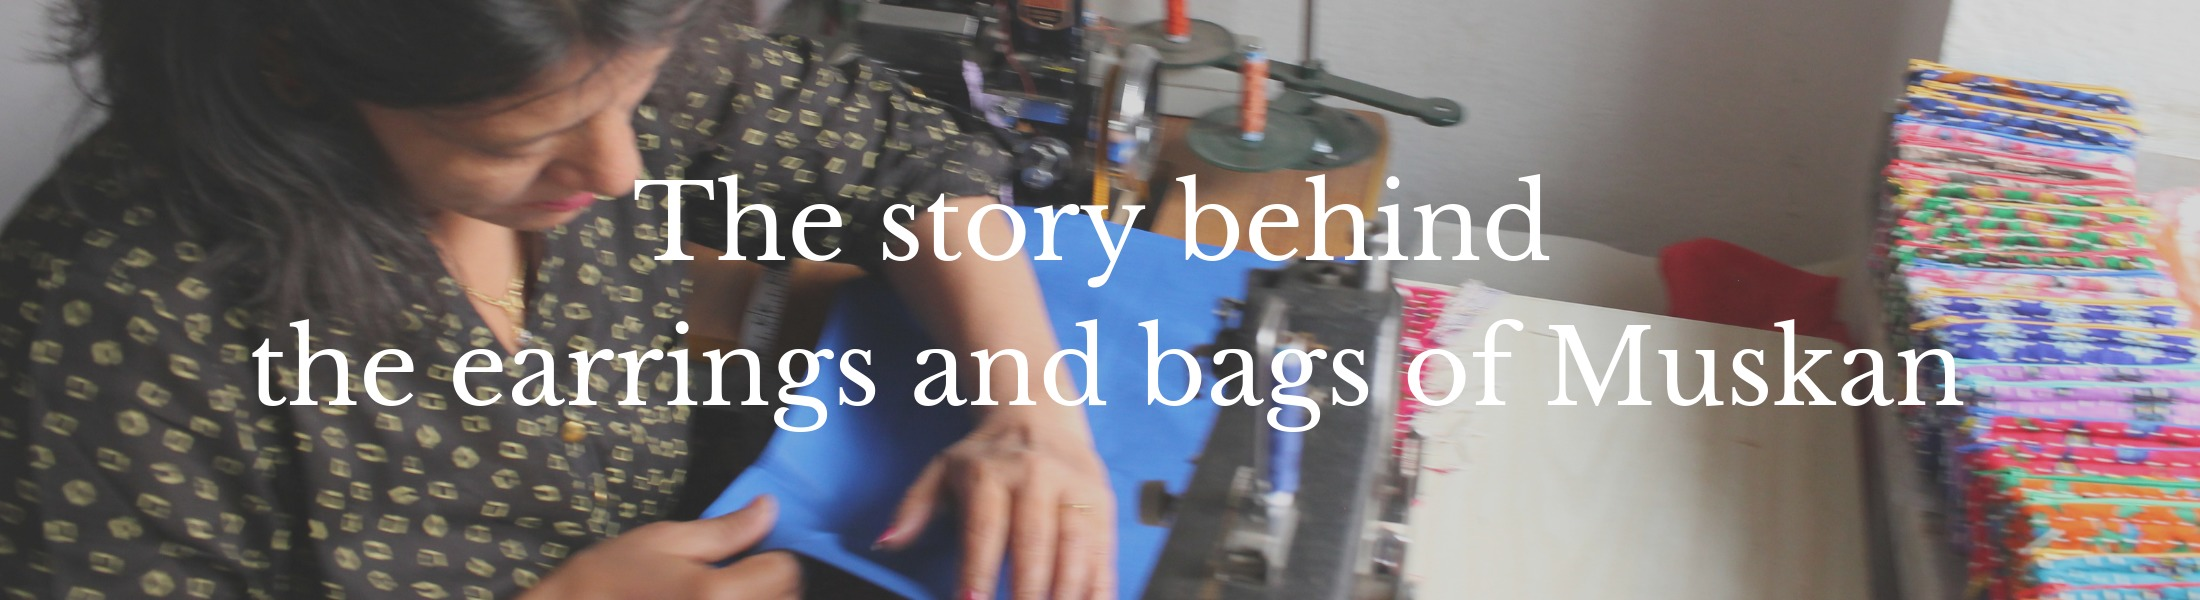 The story behind the earrings and bags Muskan